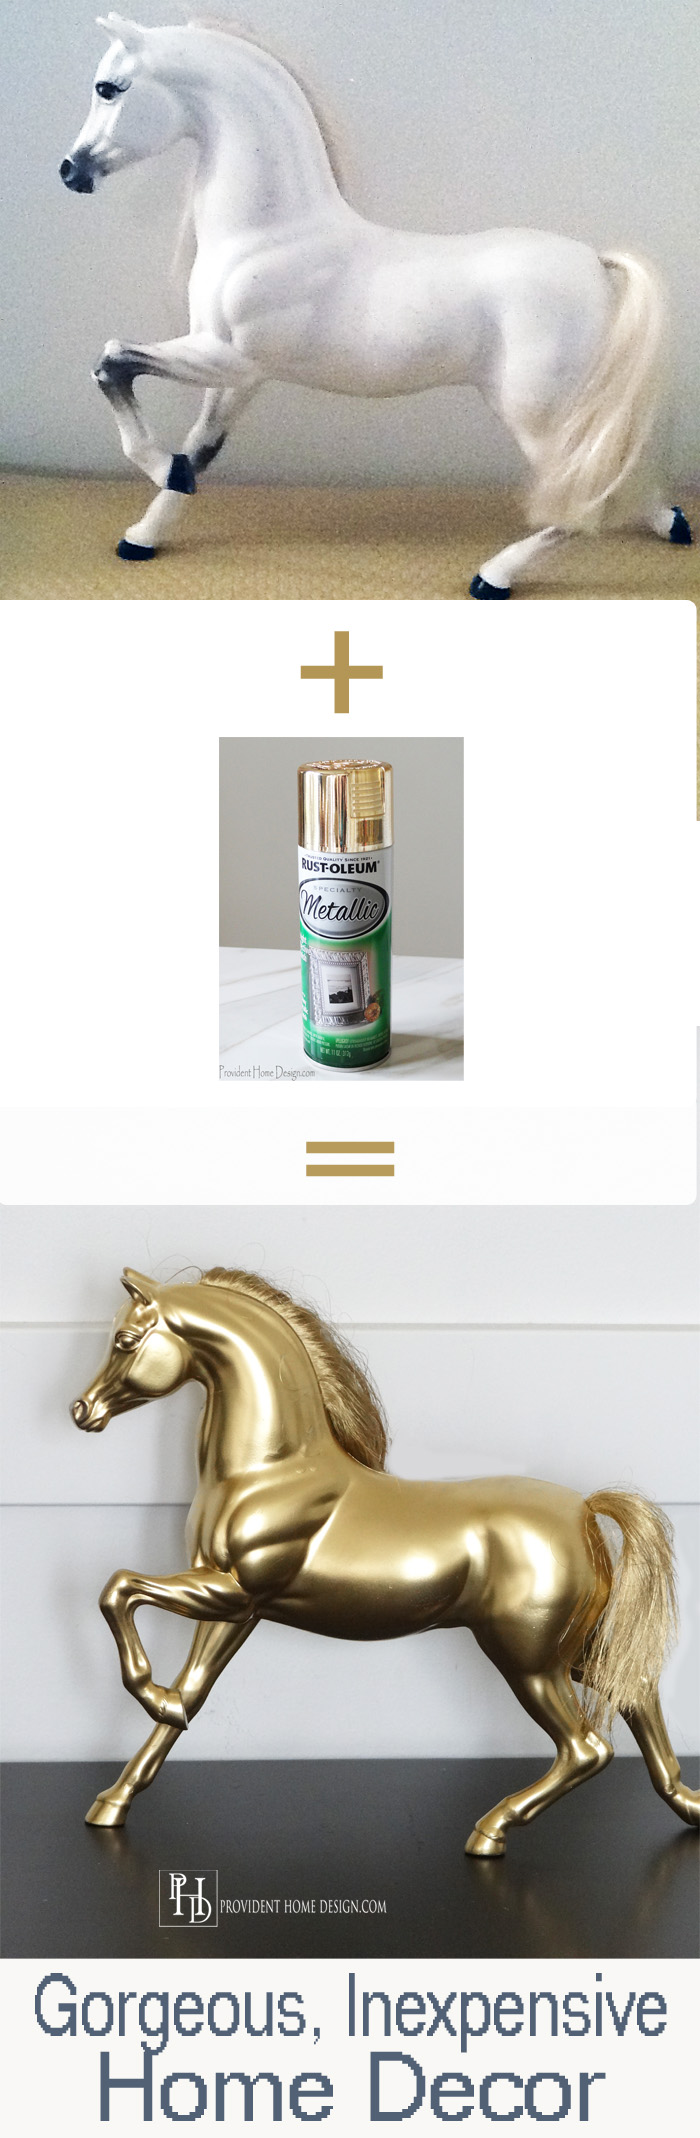 DIY Spray Painted Horse